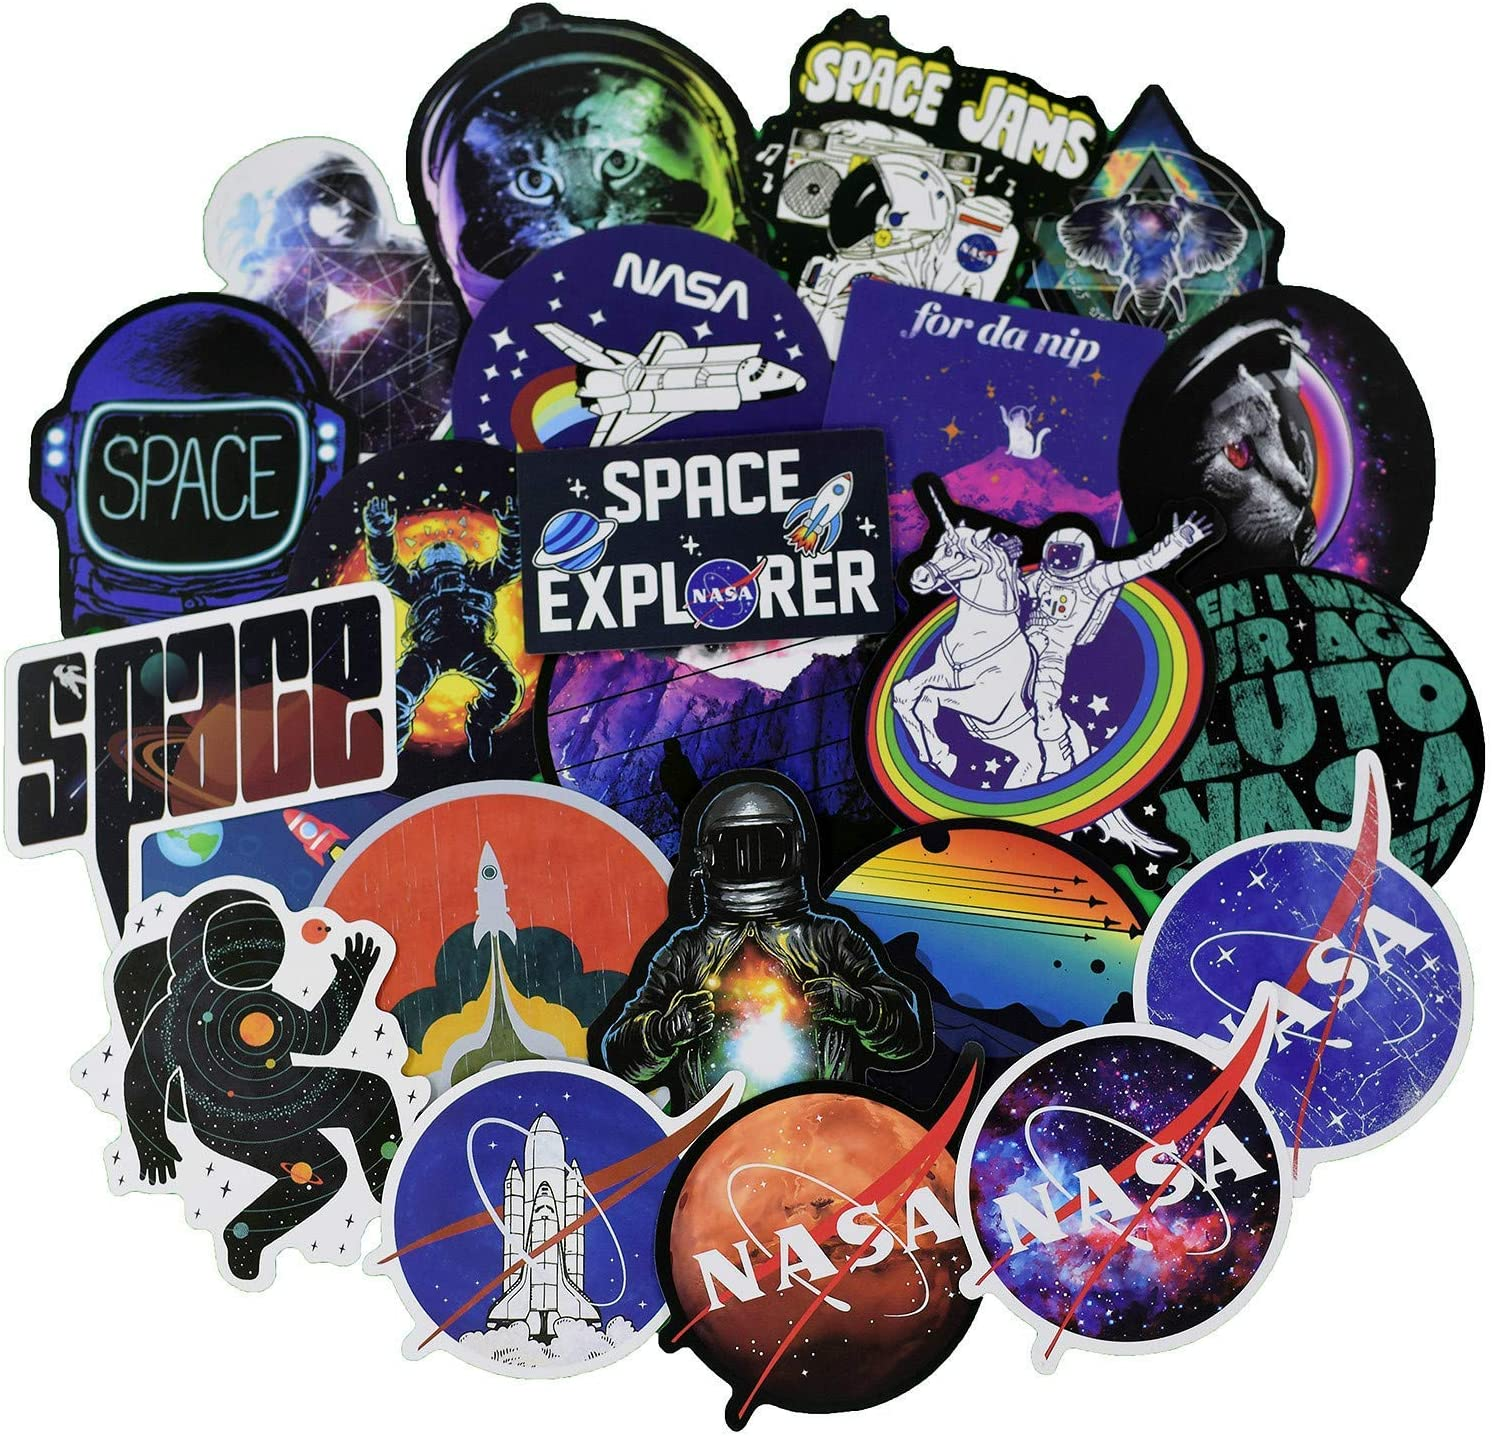 100pcs Universe NASA Stickers Pack Space Explorer Stickers Astronaut Decals for Laptop Ipad Car Luggage Water Bottle Helmet